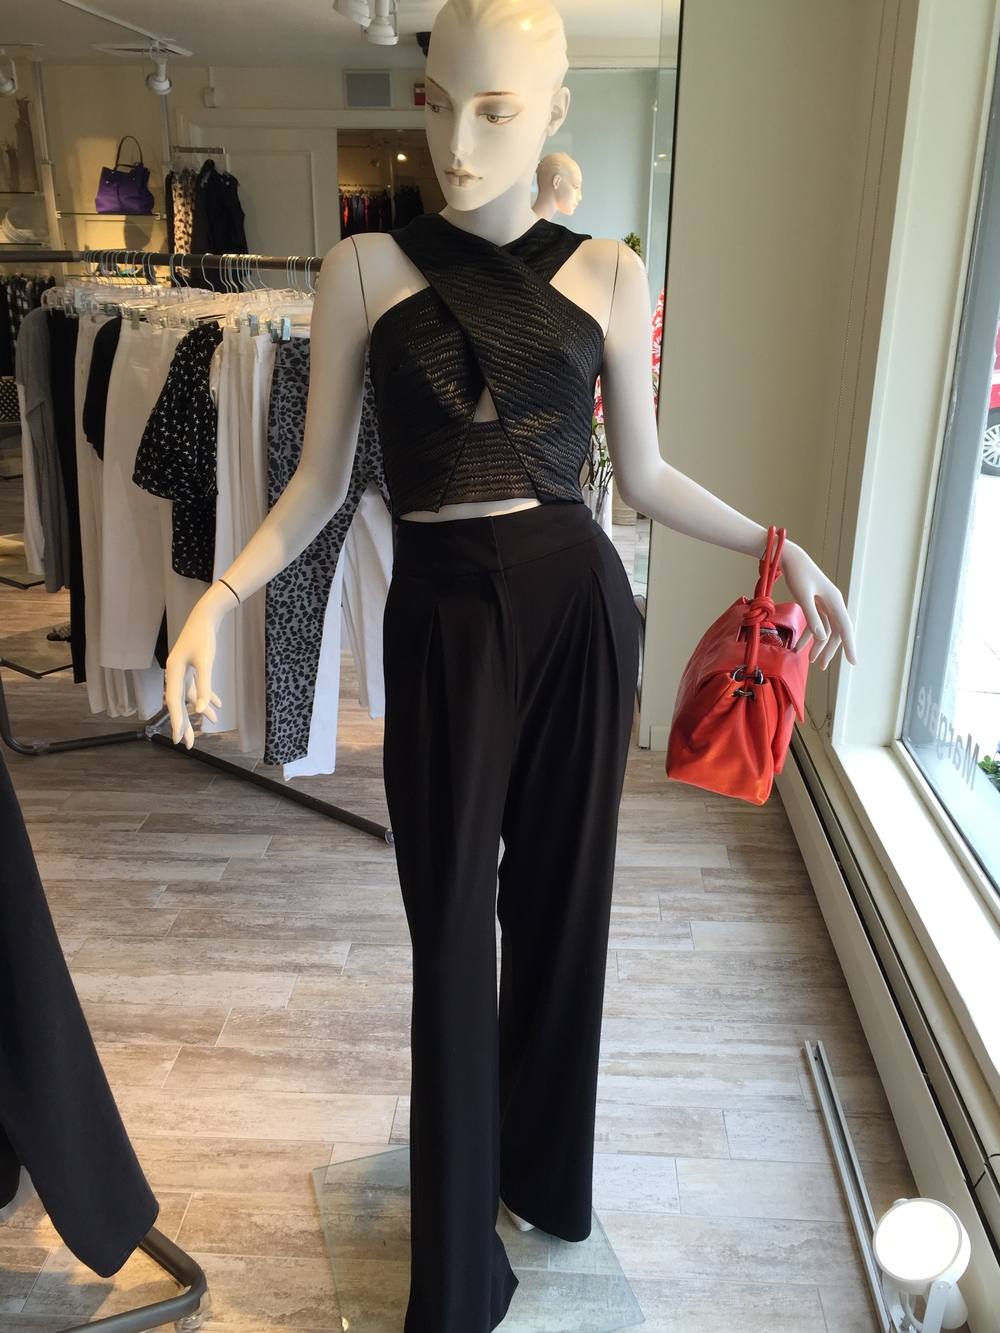 This is a great going out look from L'Agence...the crossover top shows just a bit of bare midriff without being vulgar and the long flowy pant balances the sexier top!